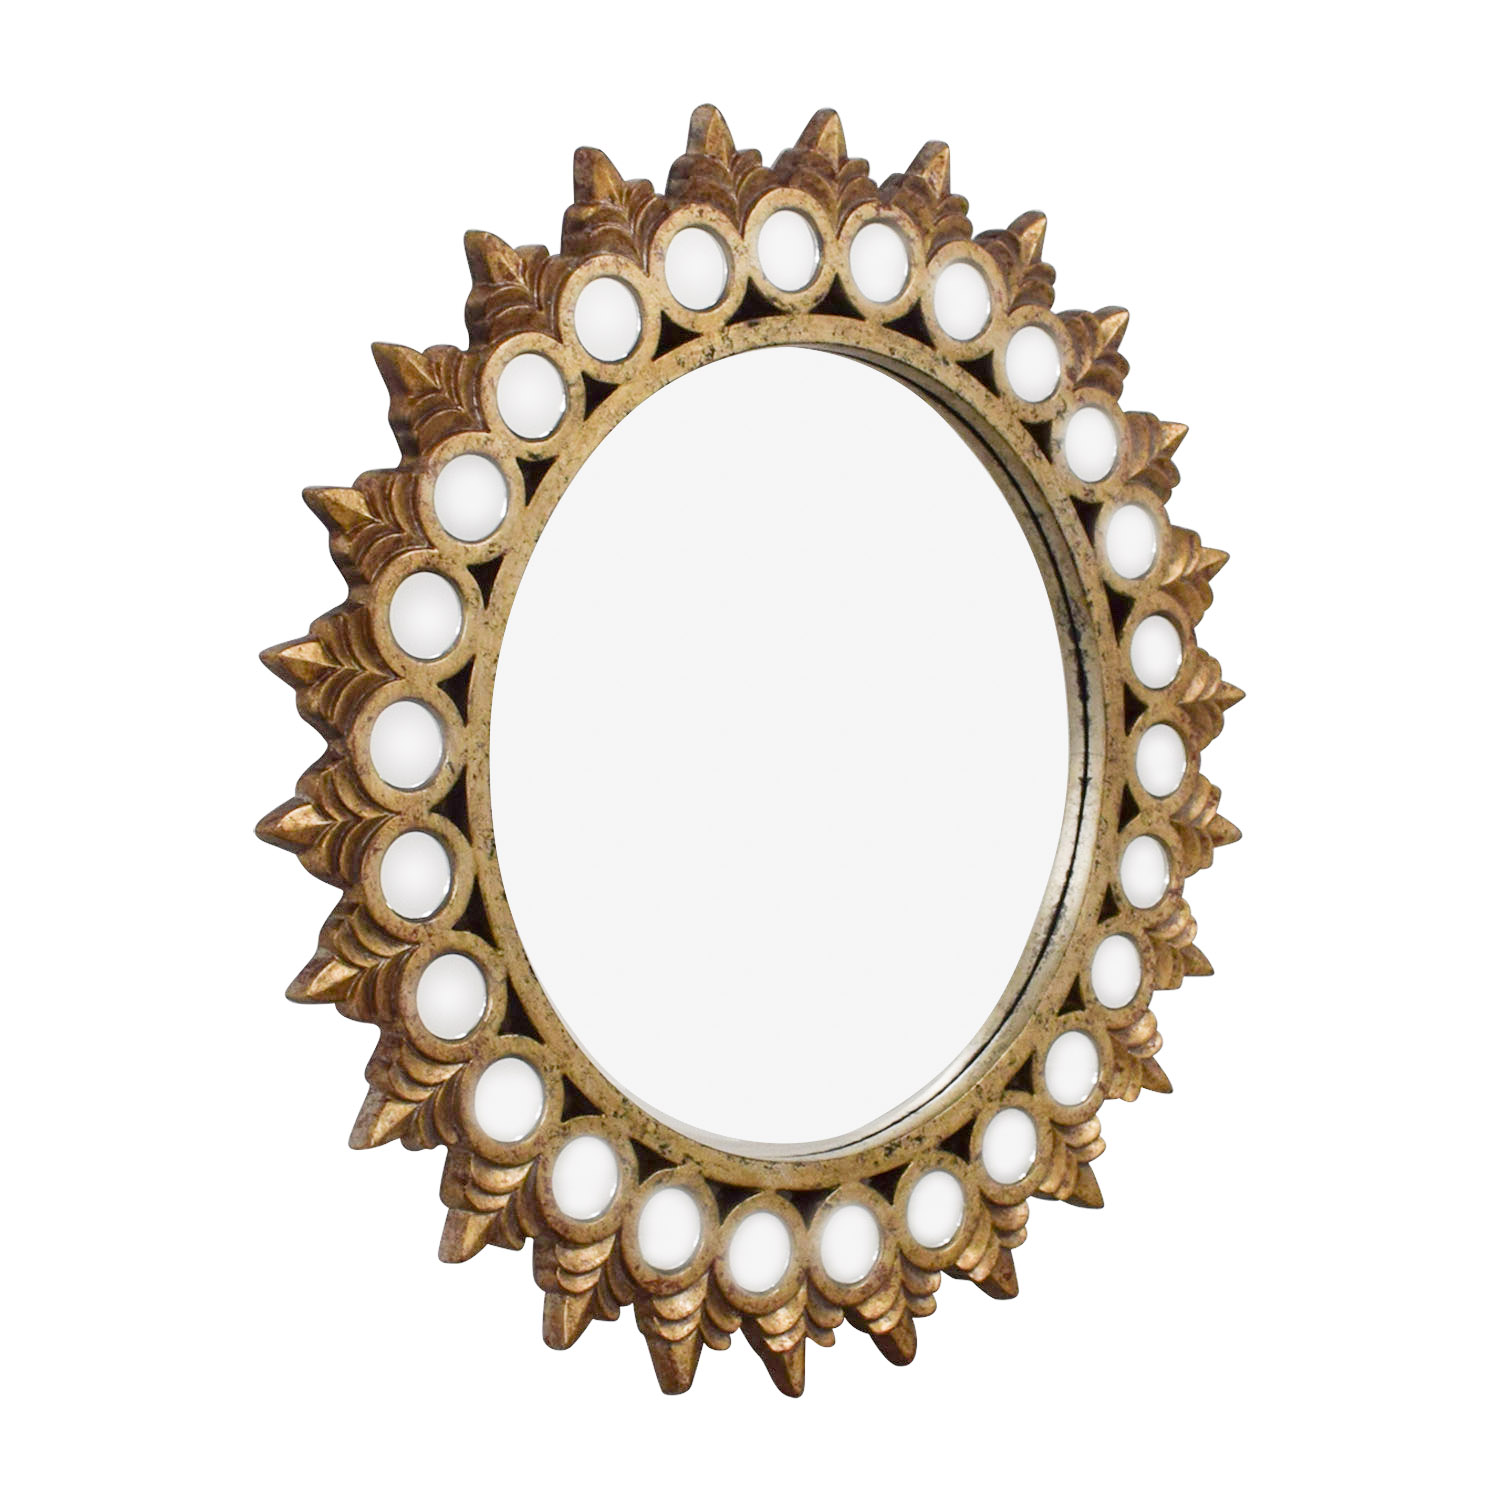 Raymour & Flanigan Raymour & Flanigan Distressed Gold Mirrored Frame Round Mirror for sale